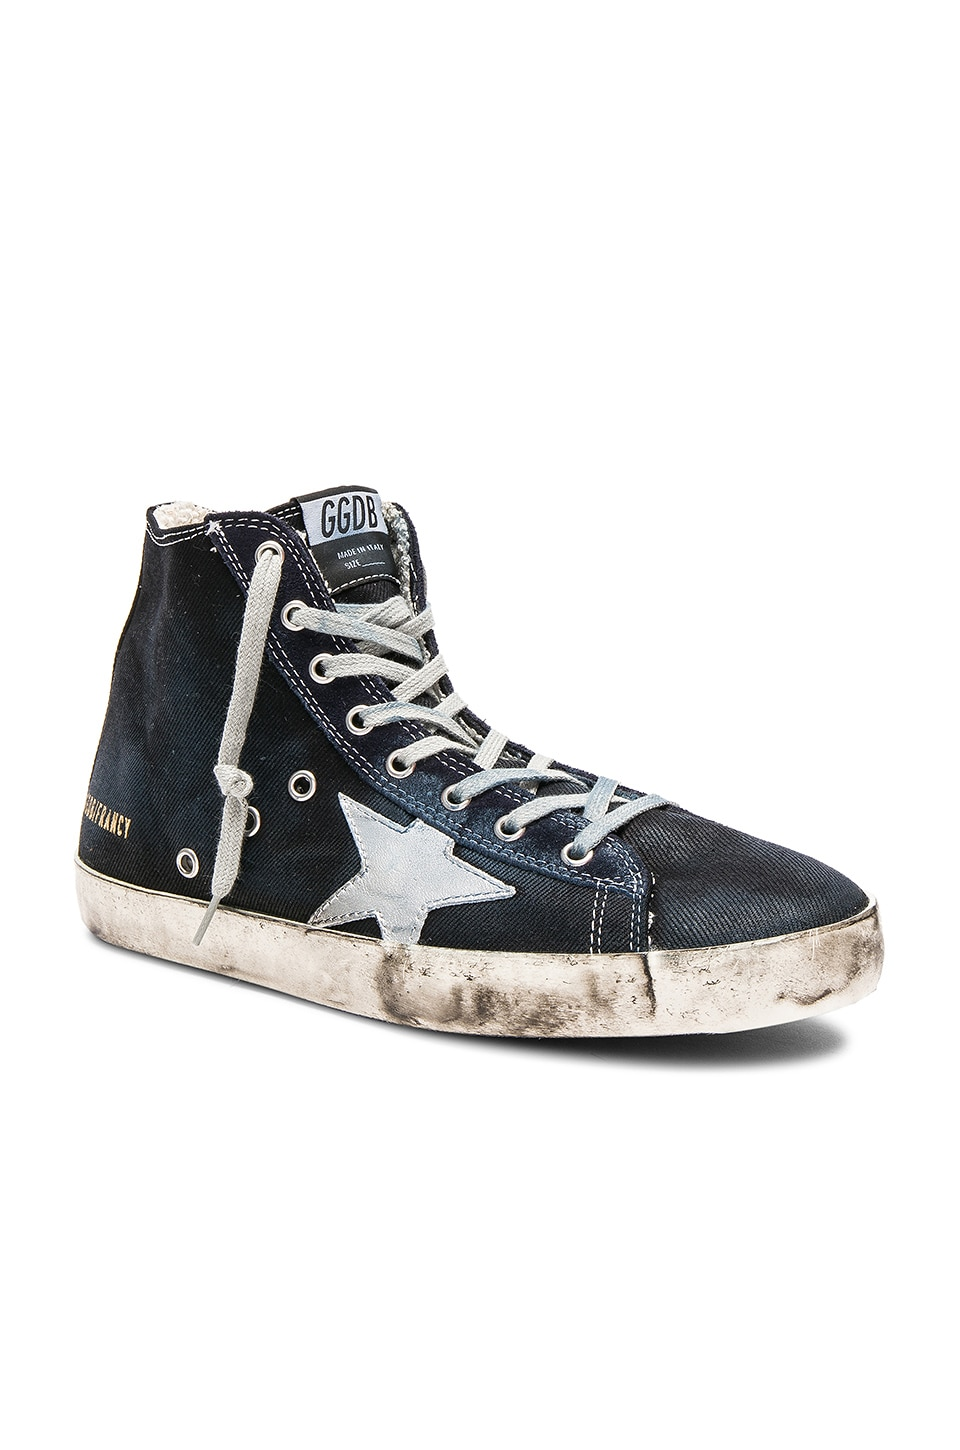 Golden Goose Francy Sneakers in Navy Denim